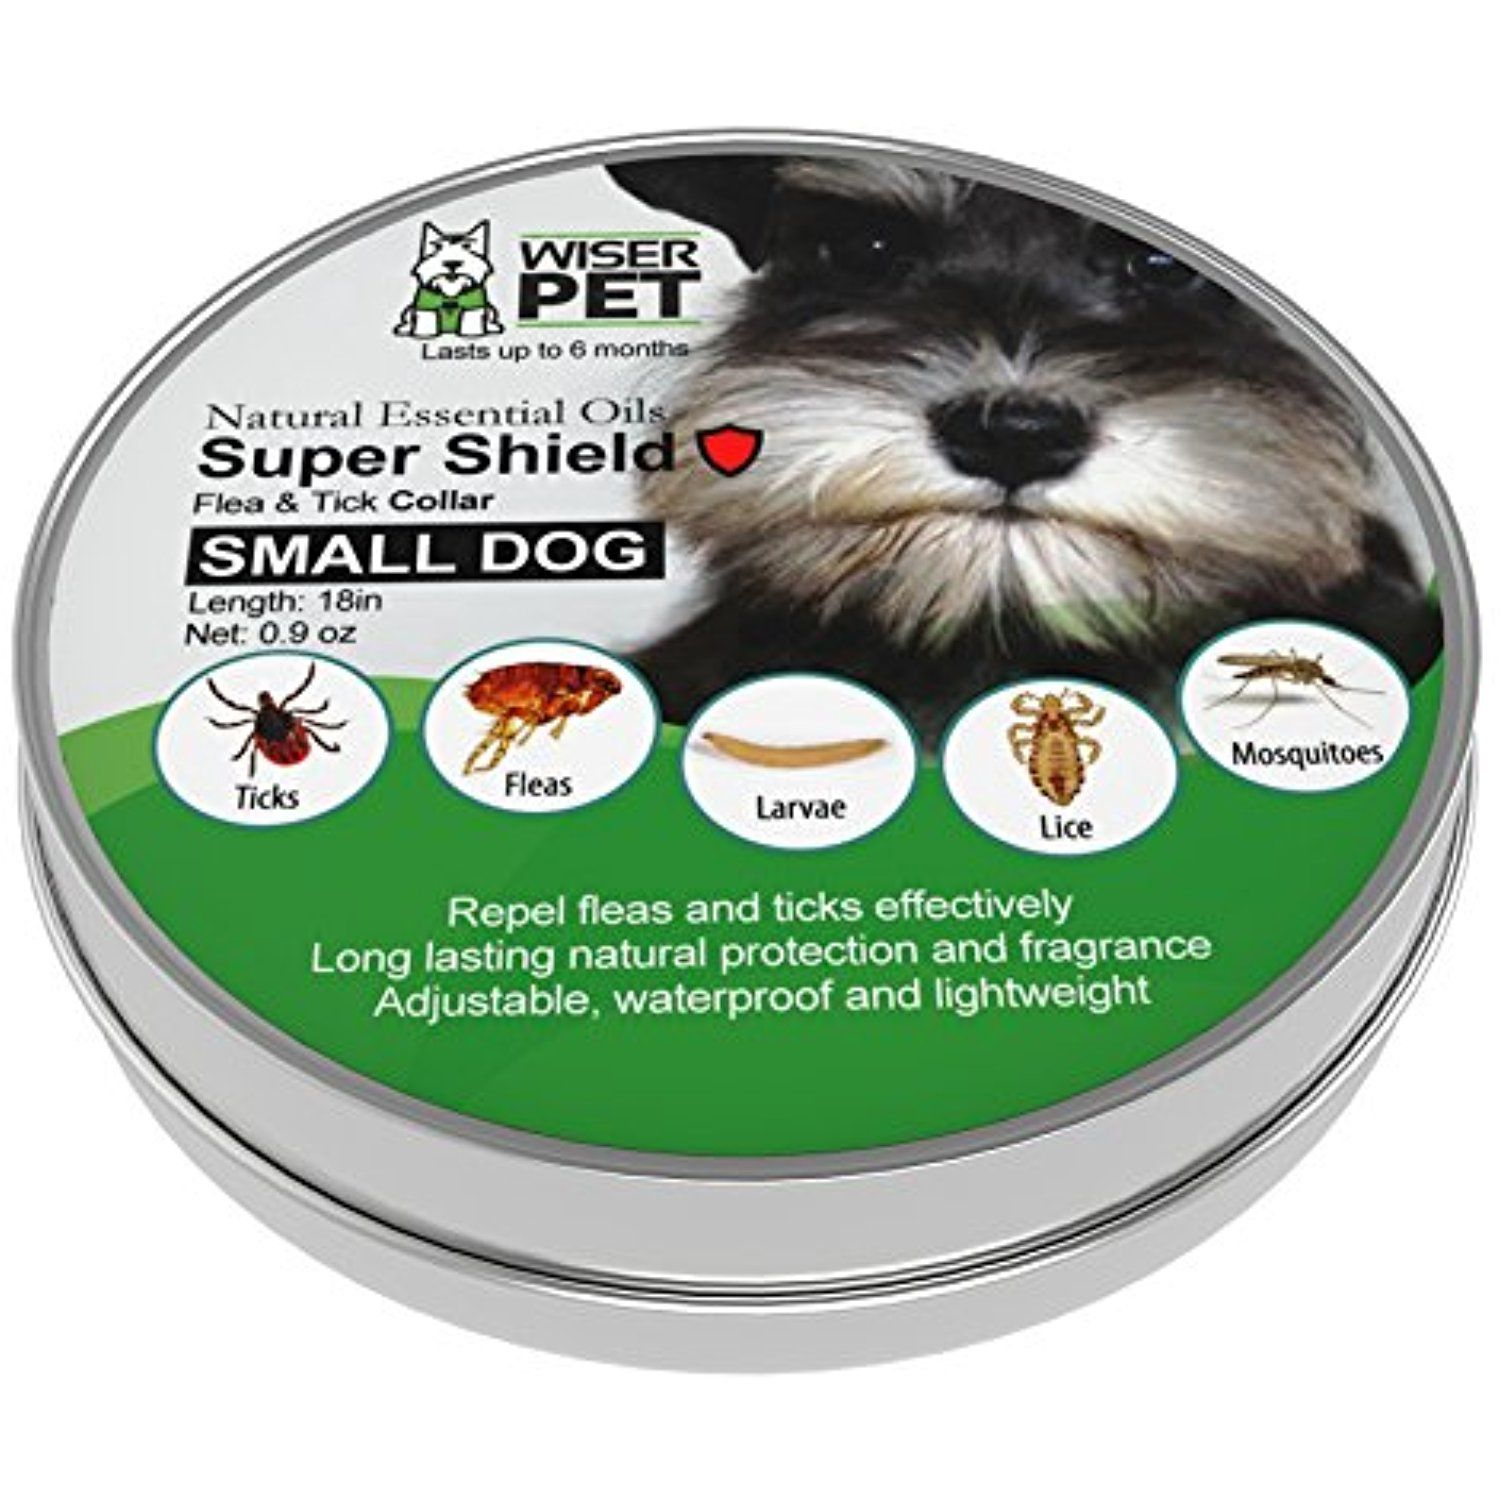 Natural Flea Collar For Small Dogs Prevent Fleas Ticks Lice And Mosquitoes All Natural Chemical And Toxin Free Safe For Small Dogs Mosquito Flea Collar